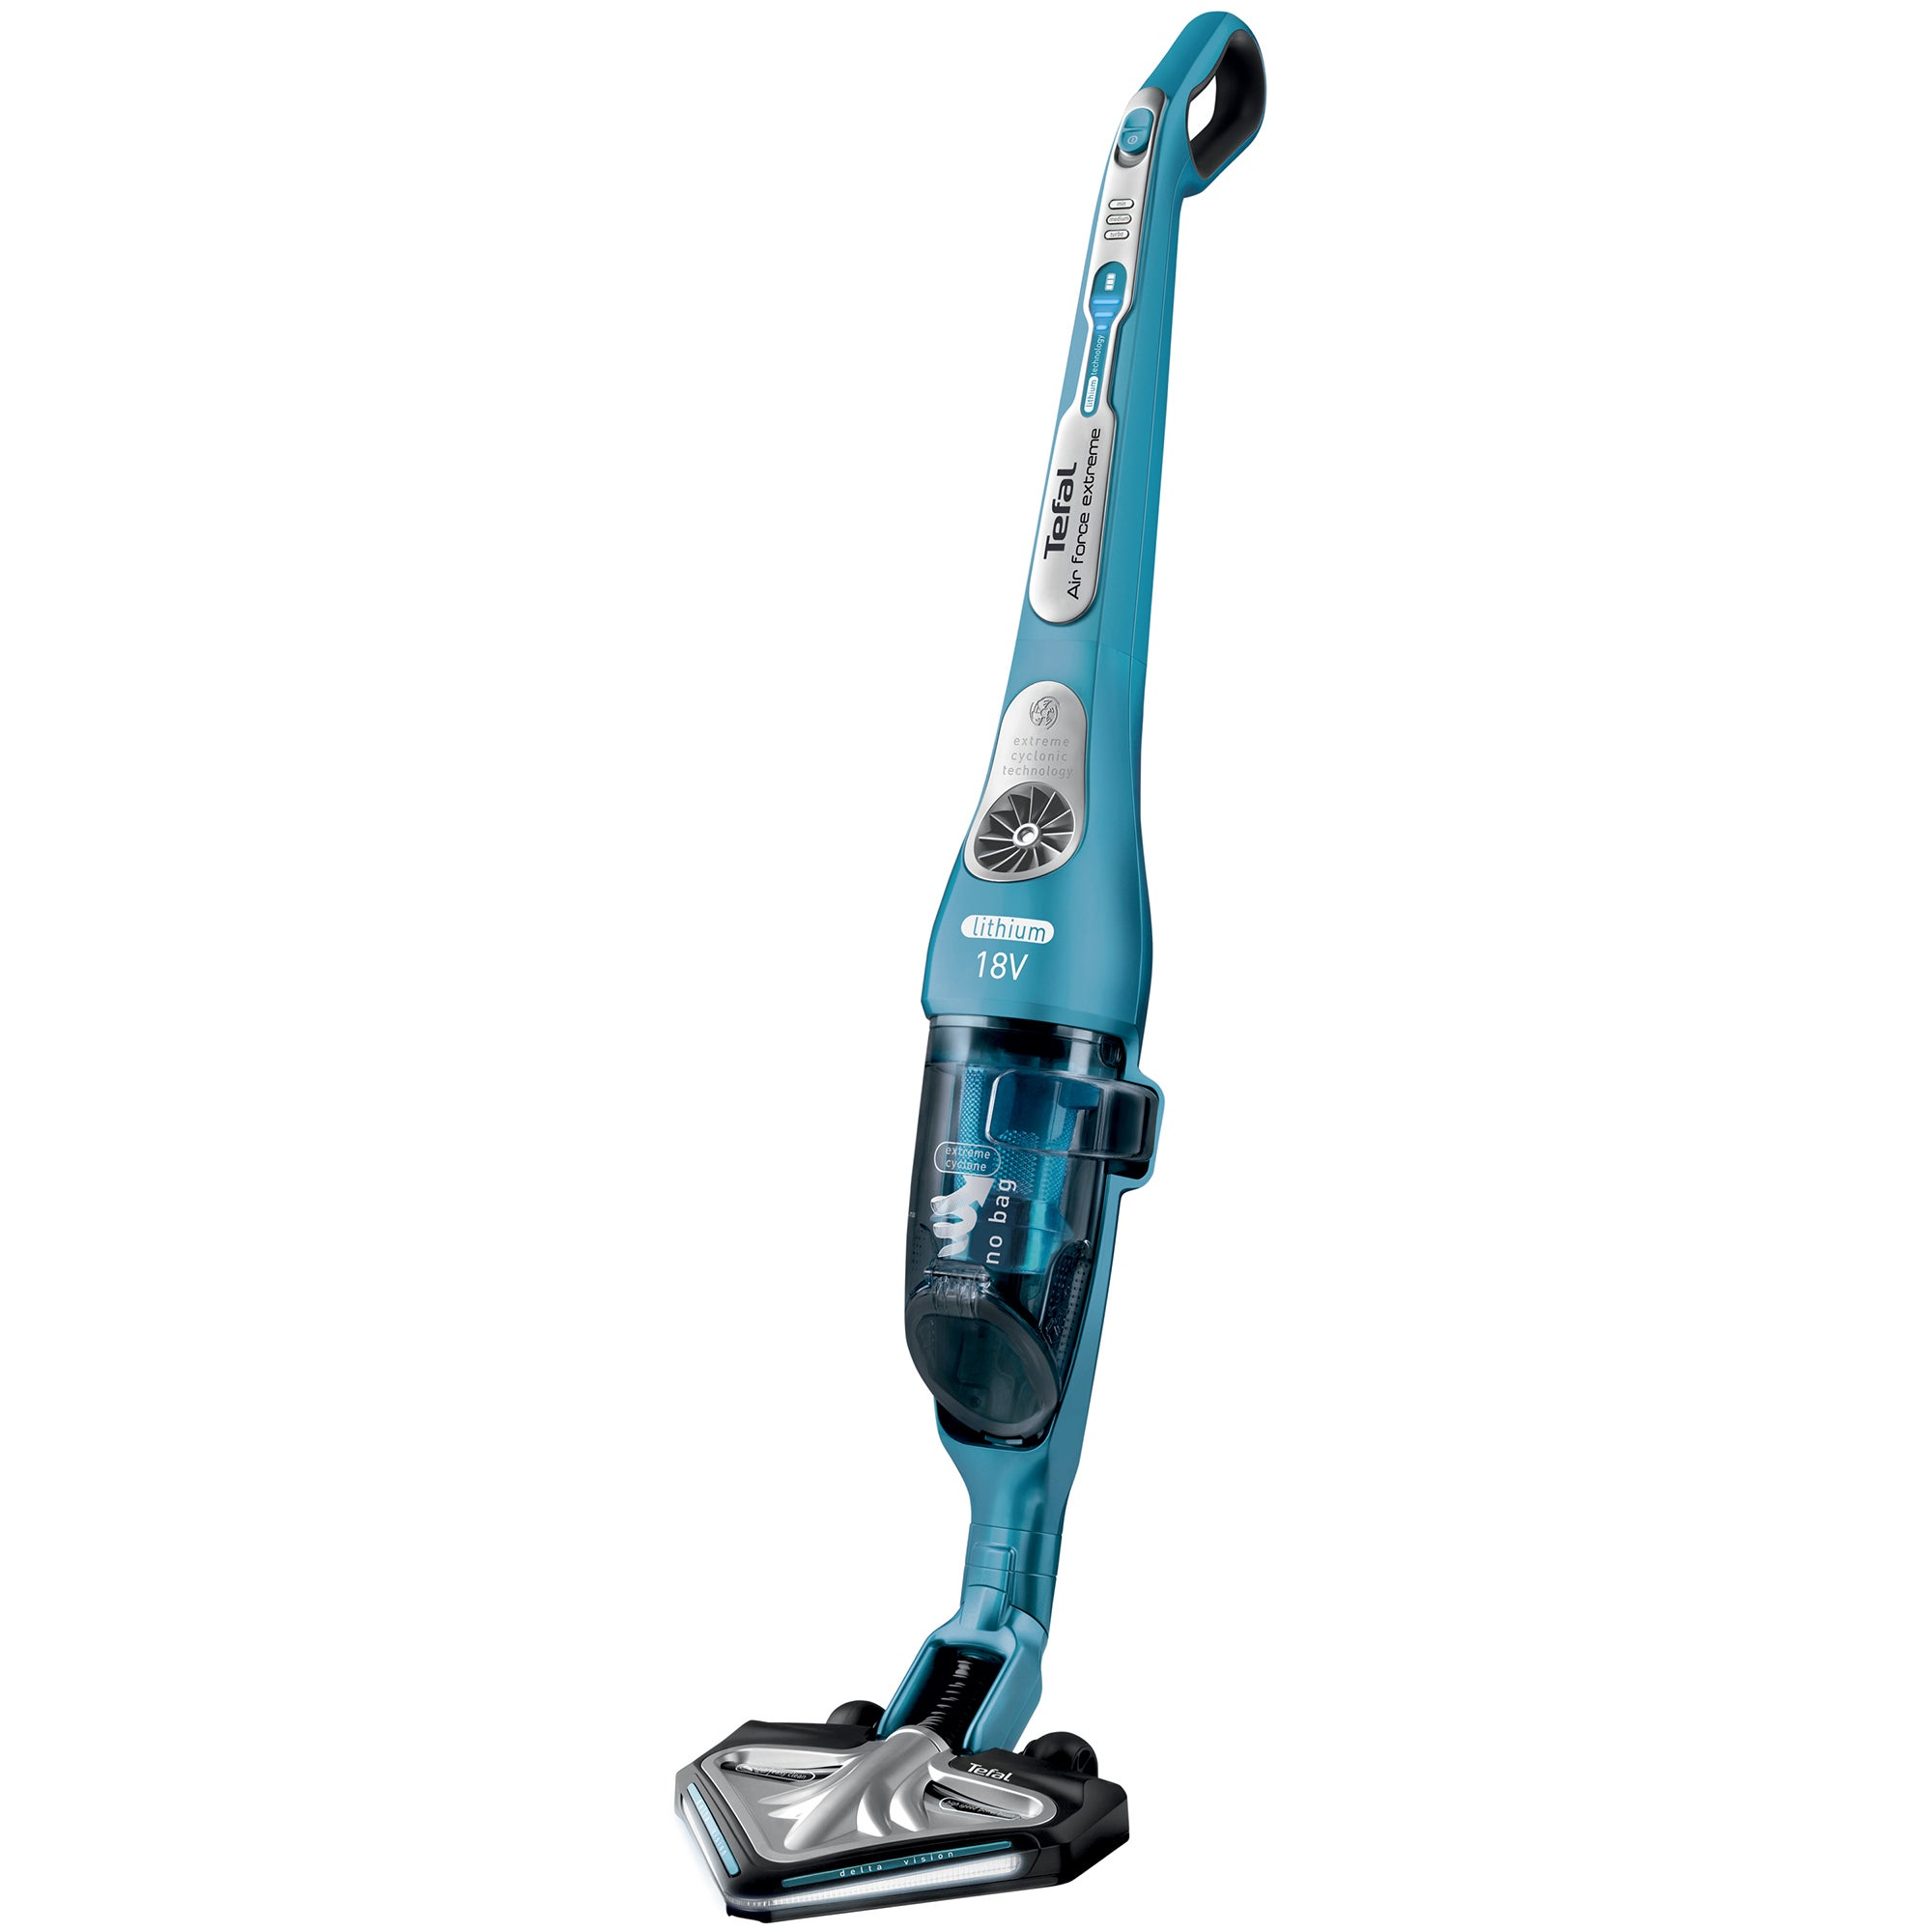 Tefal Air Force 18V Upright Vacuum Cleaner Blue